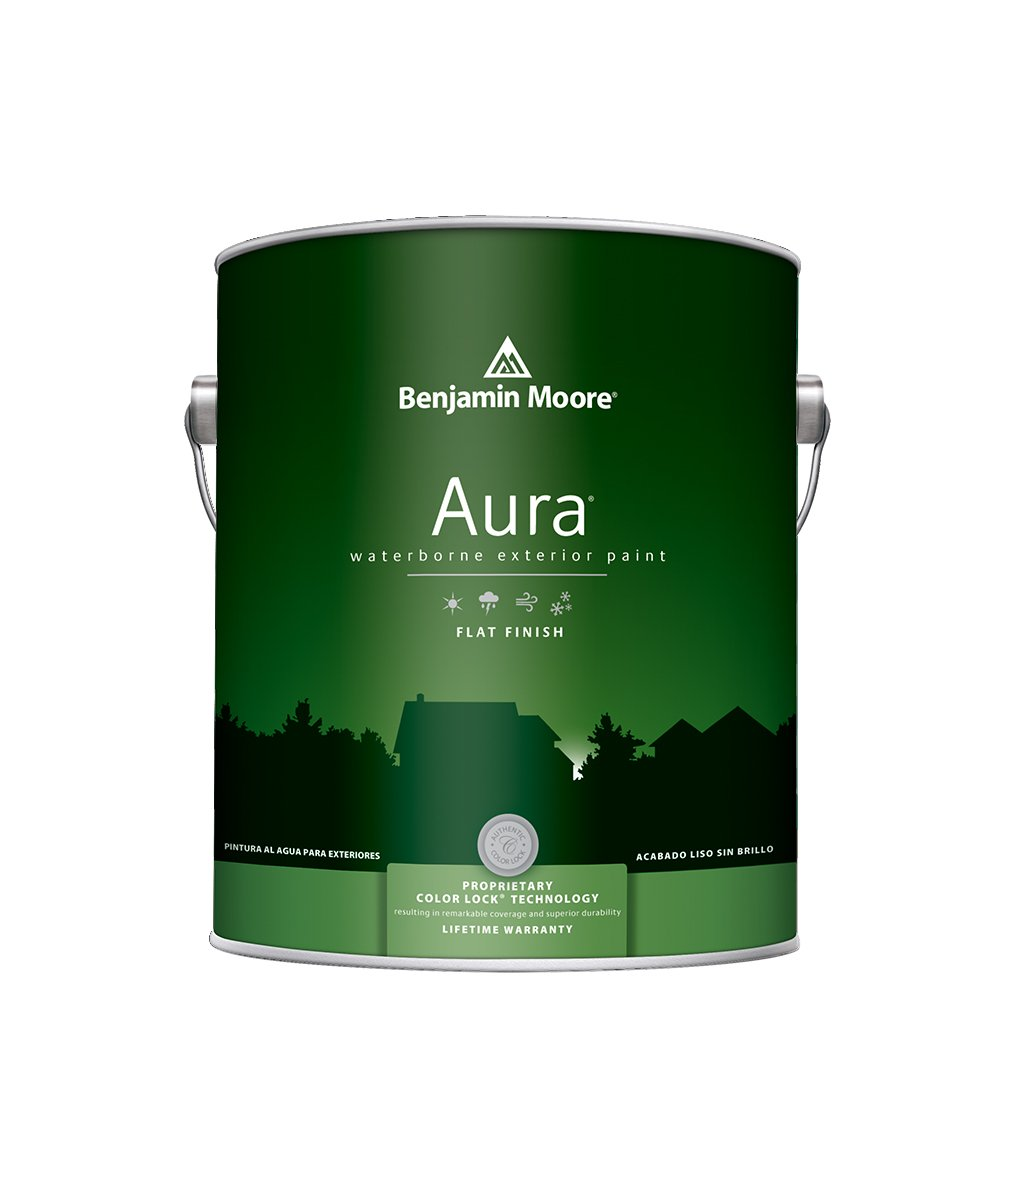 Benjamin Moore Aura Exterior Flat Paint available at Clement's Paint.